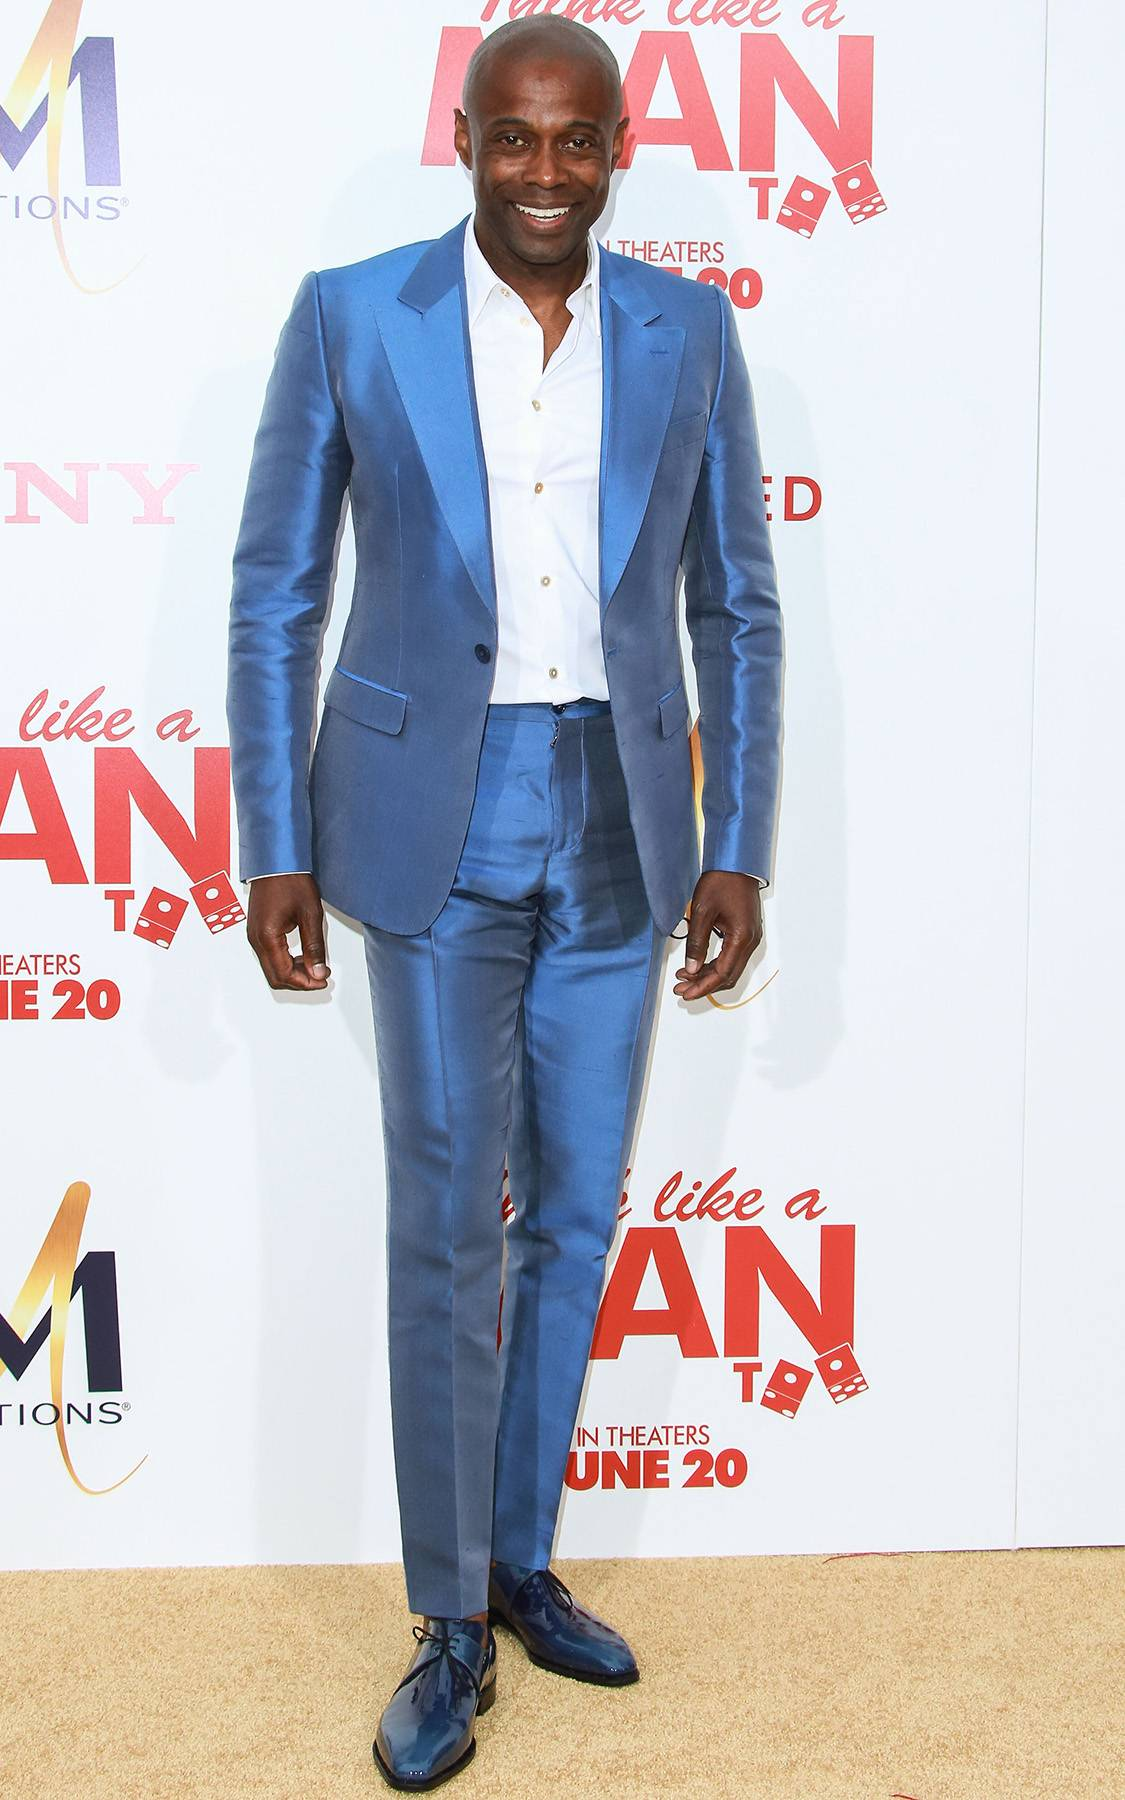 Welcome to the KEM Lab - Since KEM has stepped on the scene he has prided himself as a classy dude who makes classy music. Check out how deep his suit game is right here.(Photo by David Acosta/Celebrity Monitor) Pictured: L'Renee, Kem (Photo: David Acosta/Celebrity Monitor/Splash News/Corbis)